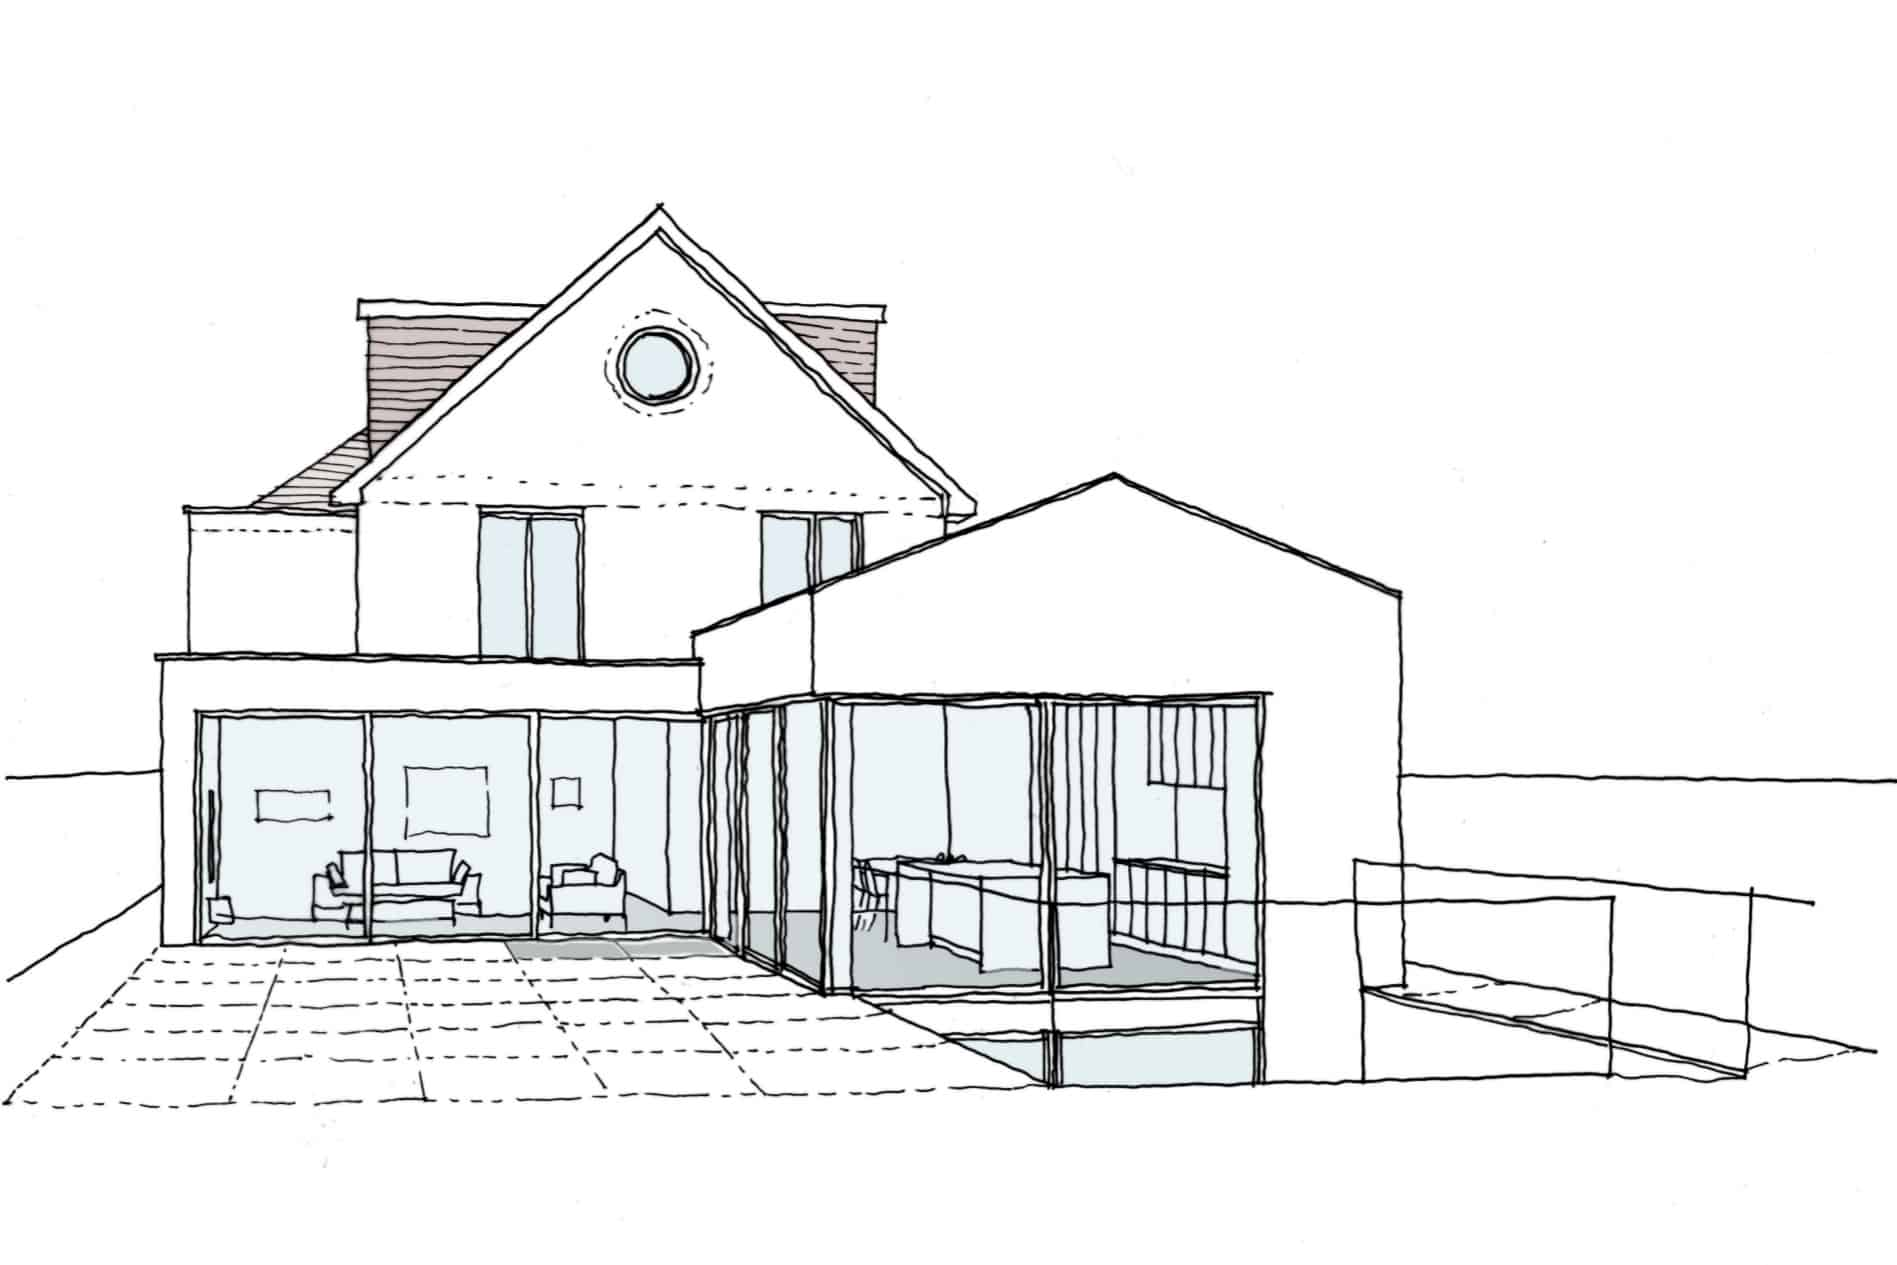 Planning Approval in Richmond to Demolish Separate Garage